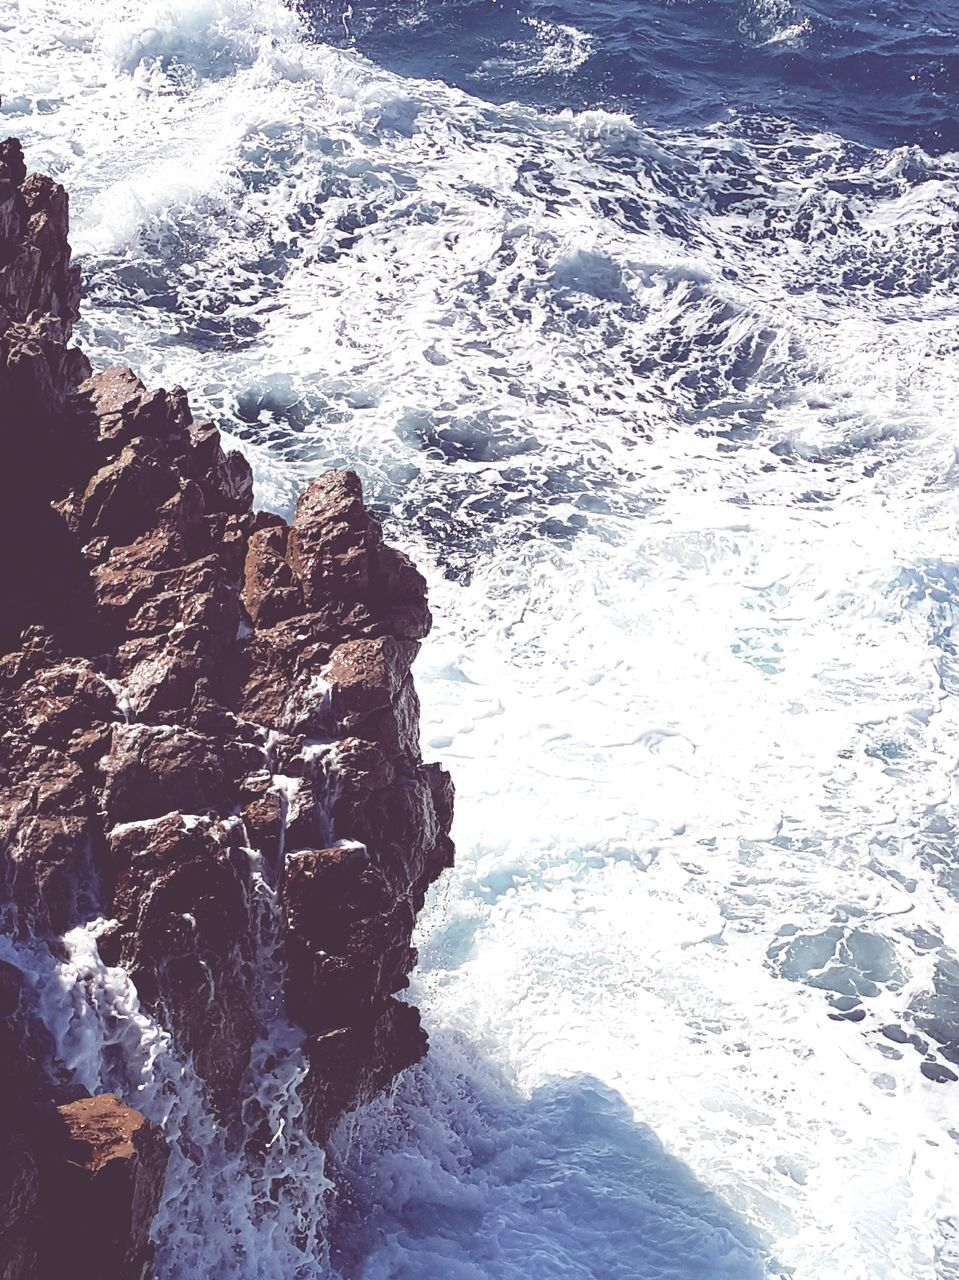 sea, wave, surf, nature, beauty in nature, water, rock - object, no people, high angle view, day, outdoors, motion, scenics, sunlight, power in nature, crash, beach, force